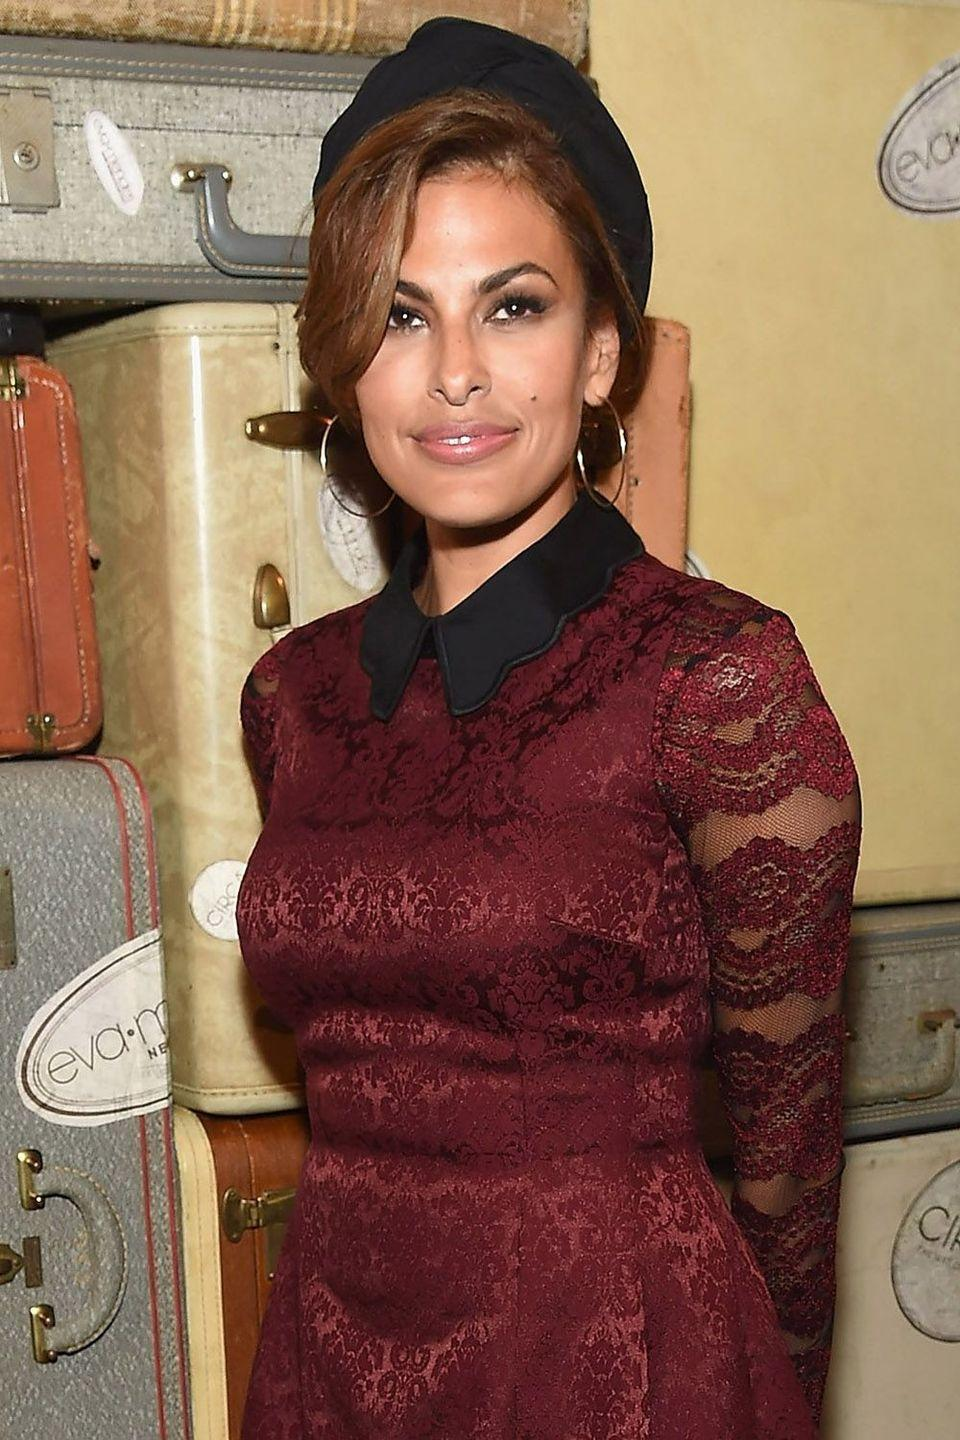 """<p>The <a href=""""http://www.delish.com/food/g4058/eva-mendes-diet-exercise/"""" rel=""""nofollow noopener"""" target=""""_blank"""" data-ylk=""""slk:actress"""" class=""""link rapid-noclick-resp"""">actress</a> entered rehab in 2008 and has been sober ever since. She opens about substance abuse addiction in her <a href=""""http://www.interviewmagazine.com/film/eva-mendes/#_"""" rel=""""nofollow noopener"""" target=""""_blank"""" data-ylk=""""slk:Interview"""" class=""""link rapid-noclick-resp""""><em>Interview</em></a> cover story that followed that same year.</p>"""